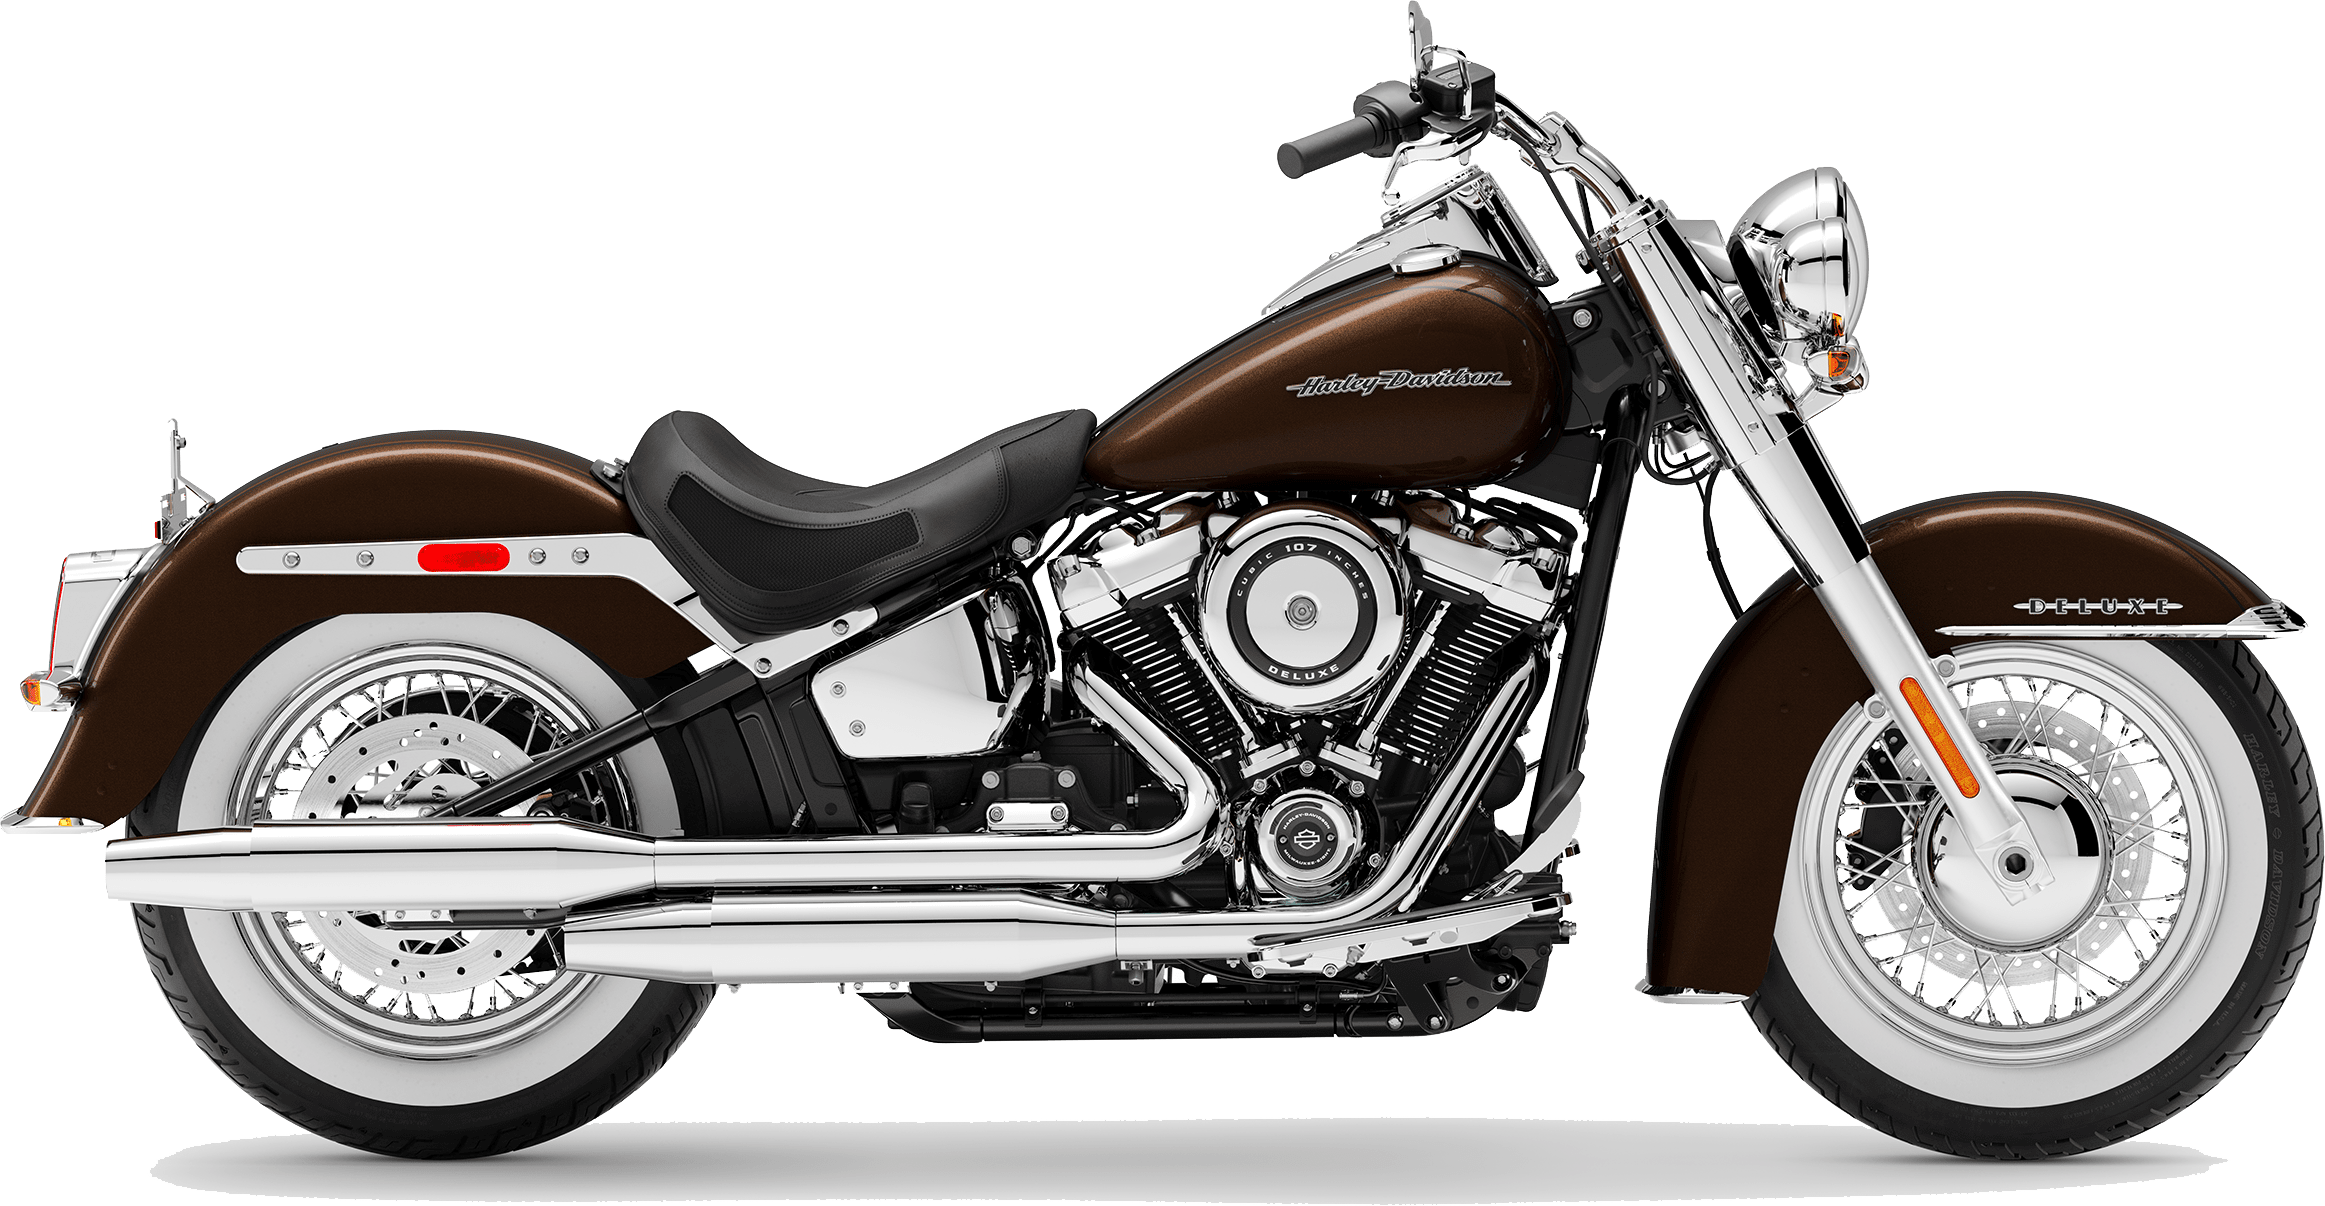 2019 Harley-Davidson Softail Deluxe Rawhide